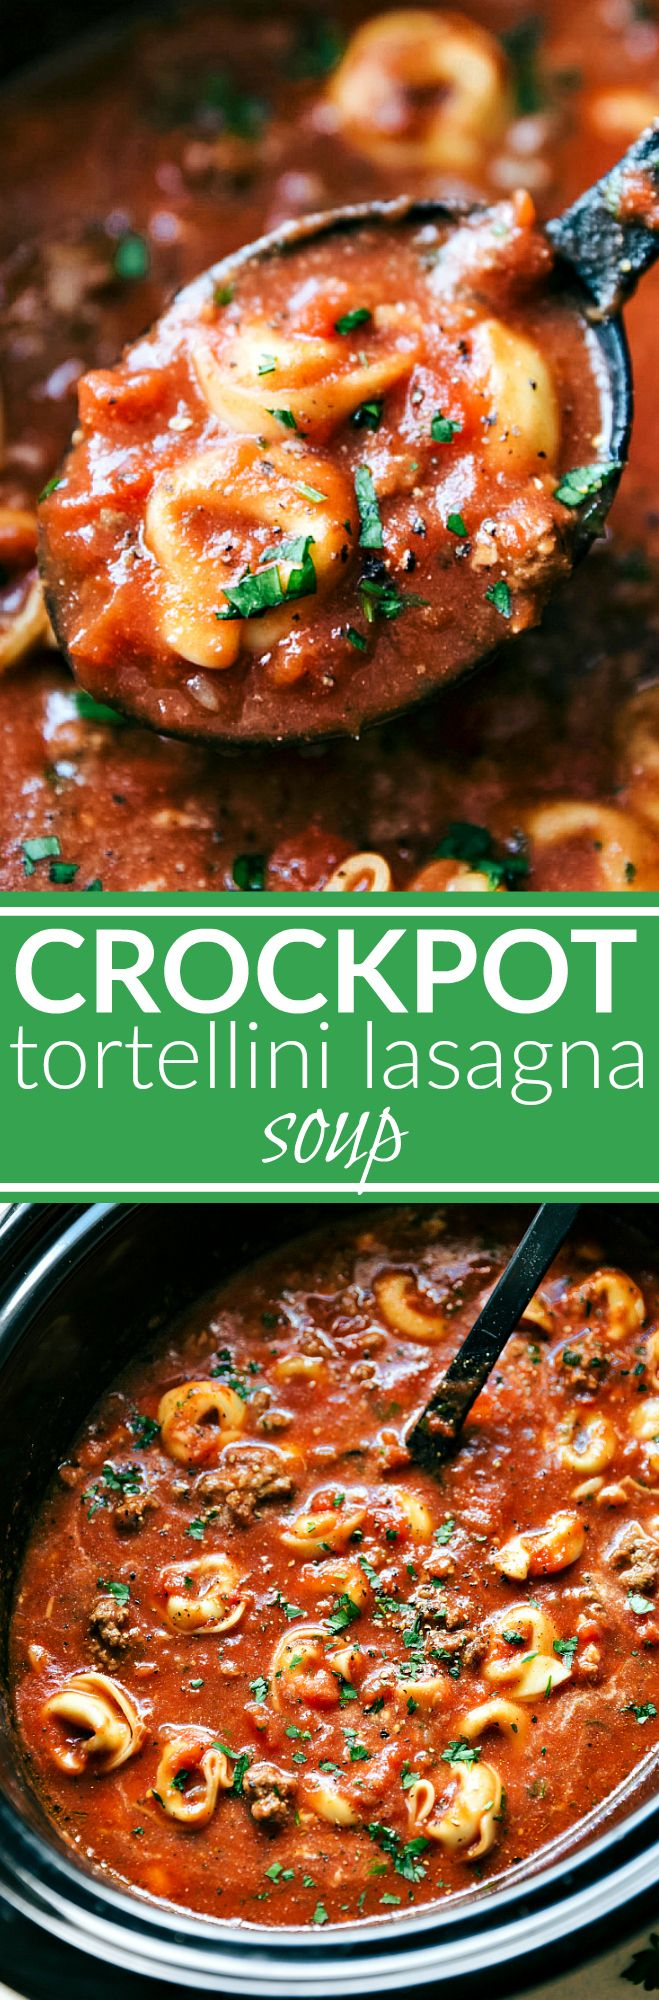 SLOW COOKER TORTELLINI LASAGNA! A crockpot lasagna soup made with cheese-filled tortellini. This soup is simple to make, tastes just like lasagna in soup form, and is a sure crowd pleaser! via chelseasmessyapron.com